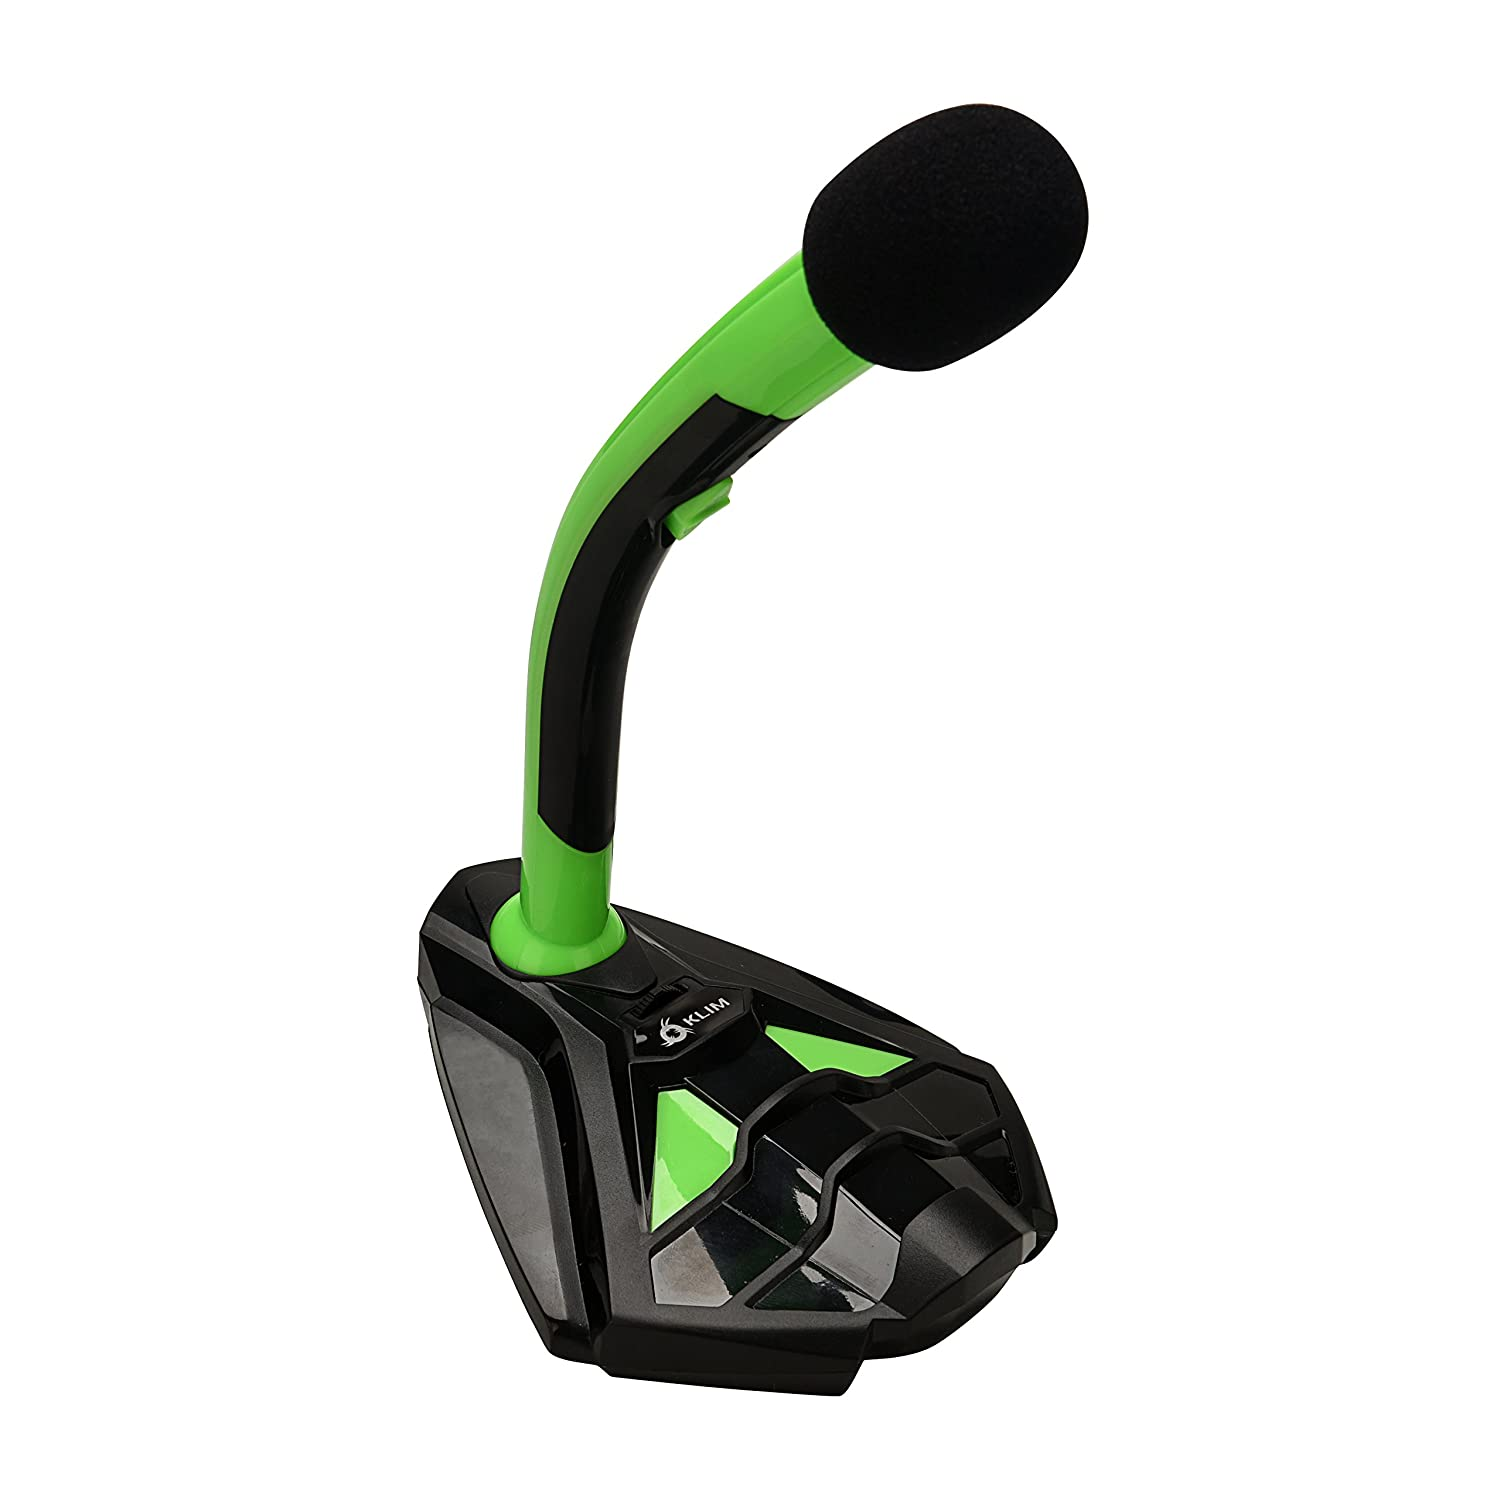 675fb9ba04f Amazon.com: KLIM Voice - Gaming USB Desk Microphone for Computer -  Compatible with PC, Laptop, Mac, PS4 - Professional Desktop Mic with Stand  - Recording, ...